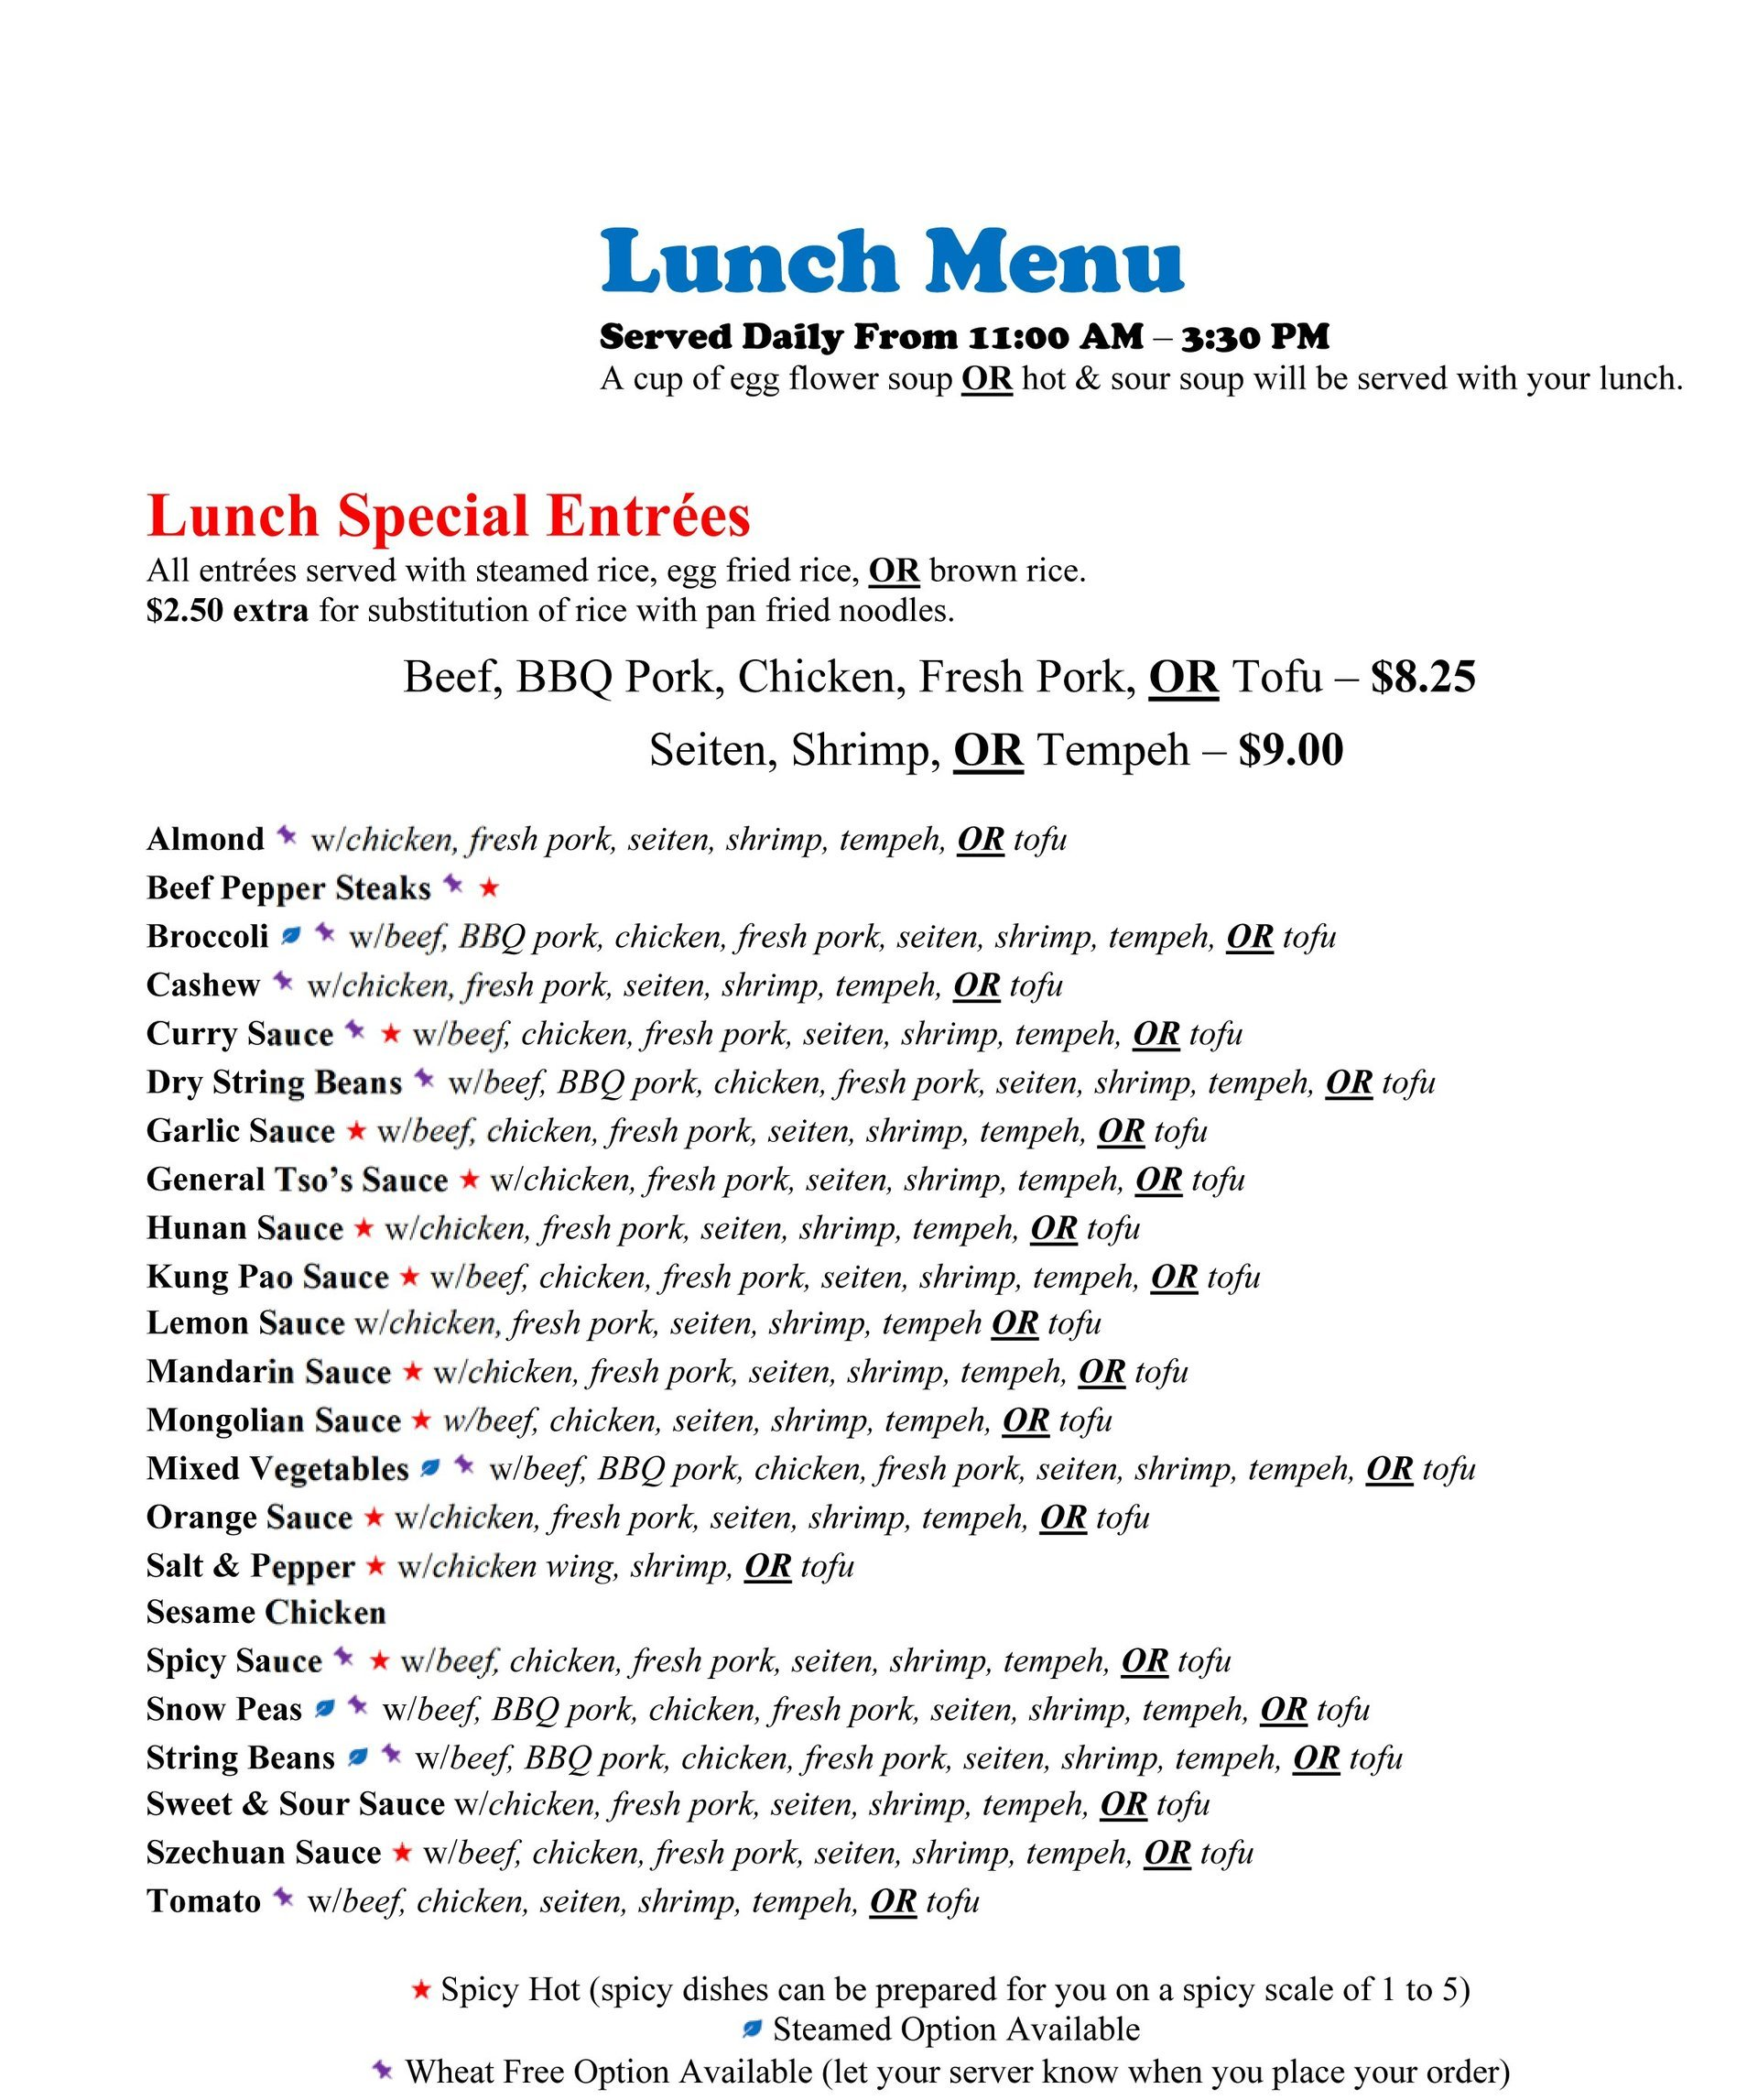 lunch special entrees